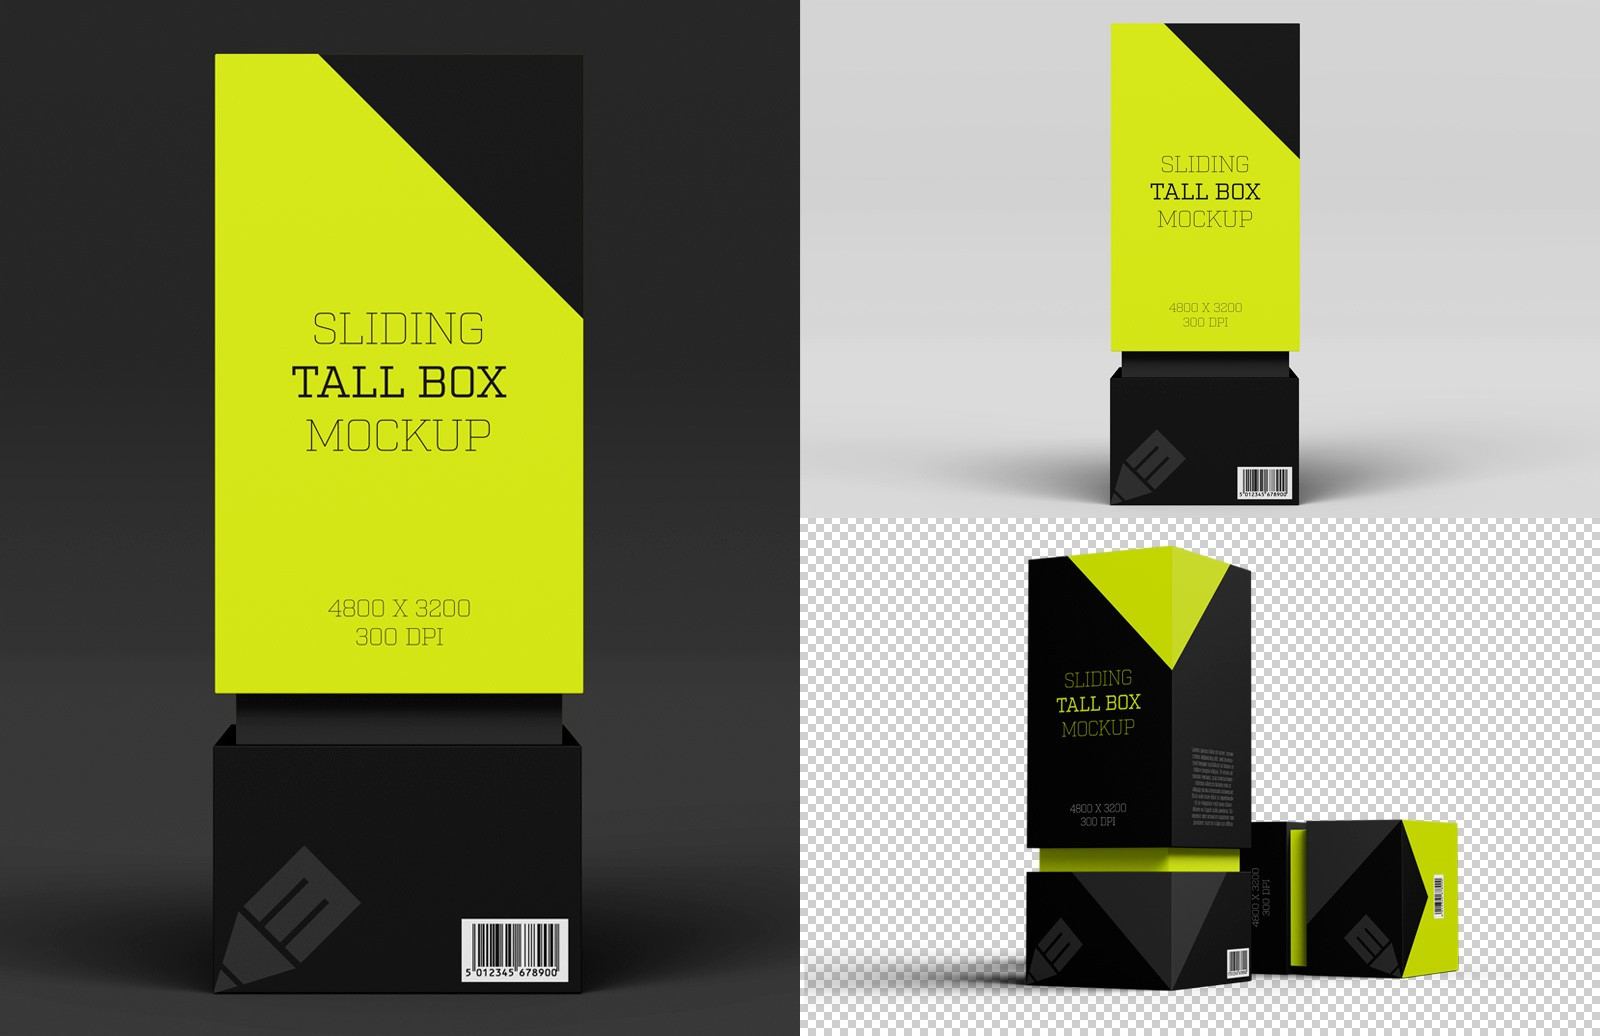 Sliding Tall Box Mockup Preview 1